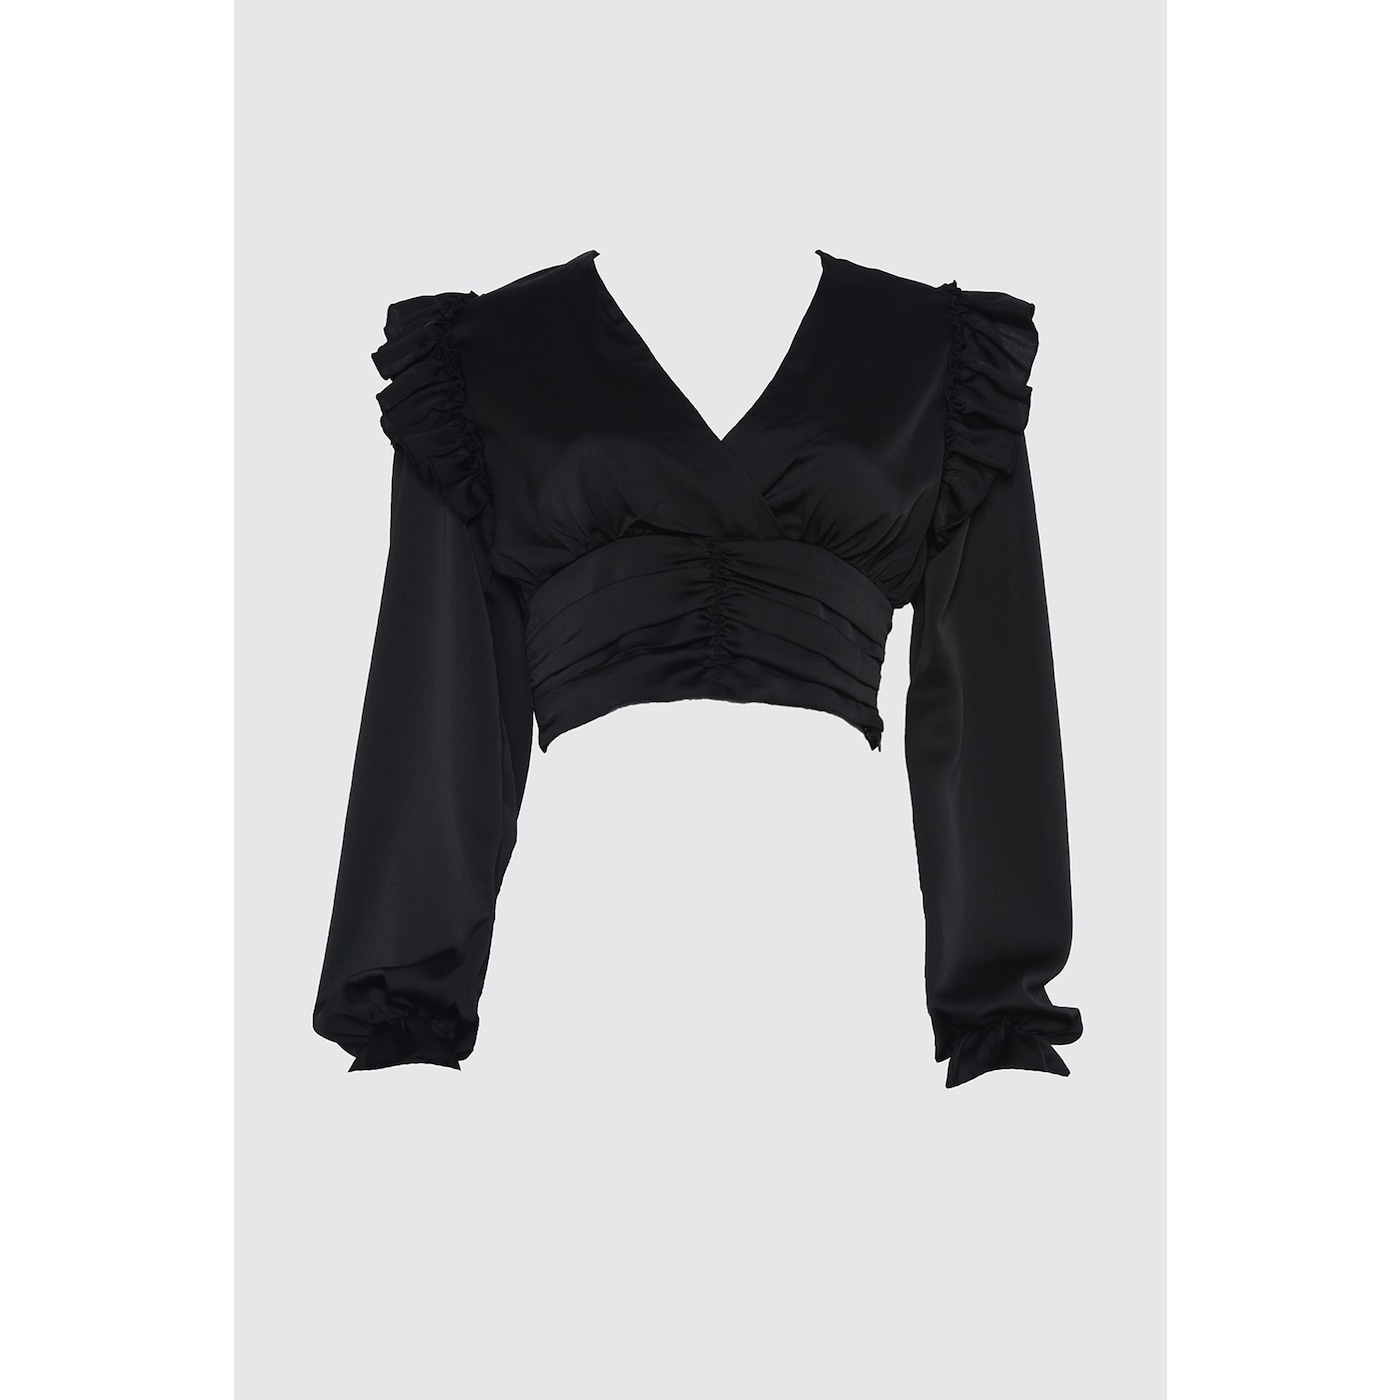 Trendyol Satin Blouse with Black Ruffin Detail dámské 36